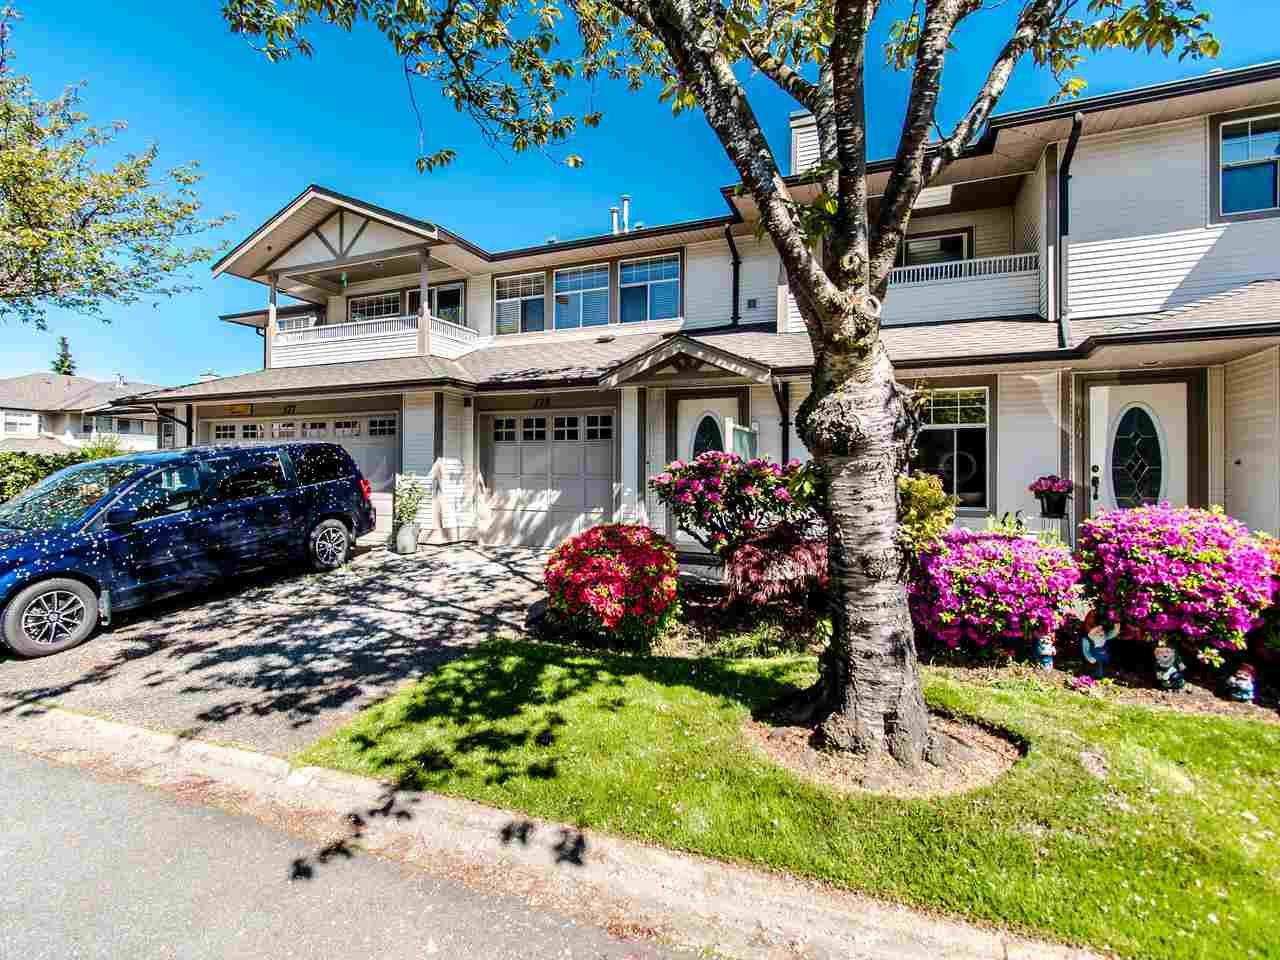 """Main Photo: 178 20391 96 Avenue in Langley: Walnut Grove Townhouse for sale in """"CHELSEA GREEN"""" : MLS®# R2455217"""